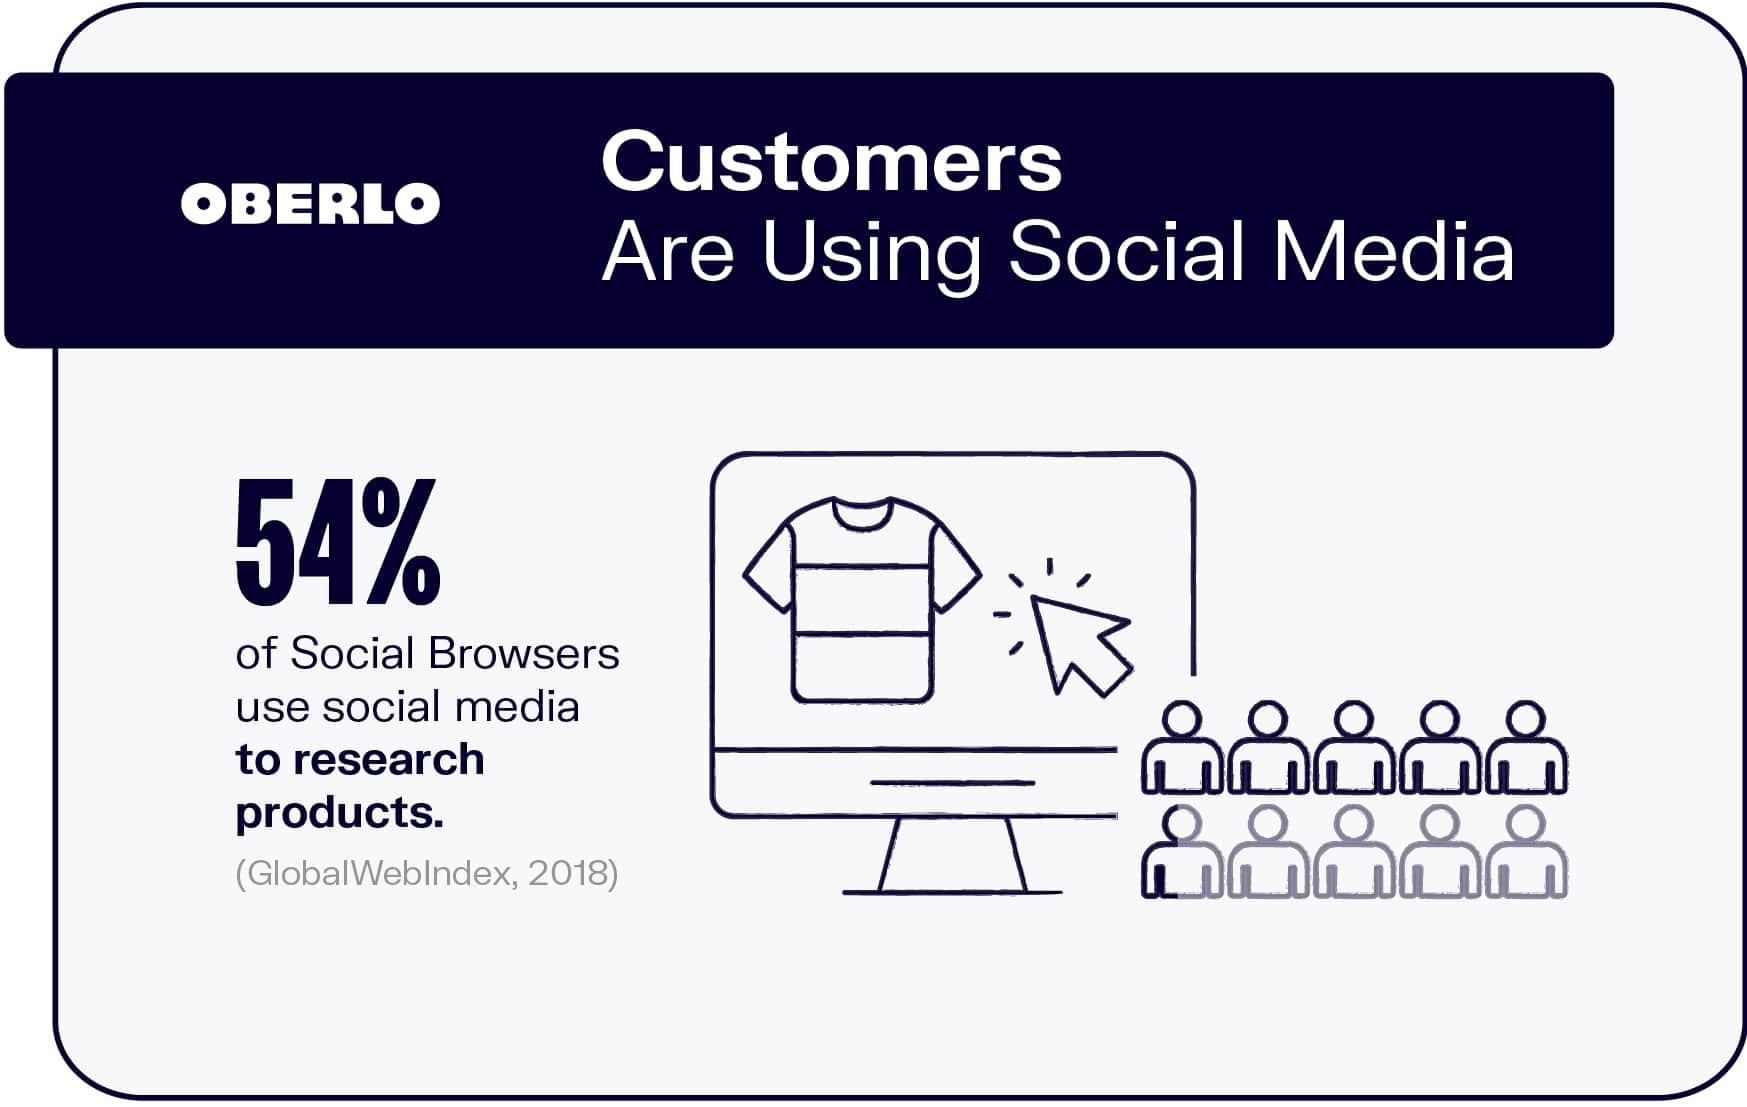 Customers Are Using Social Media